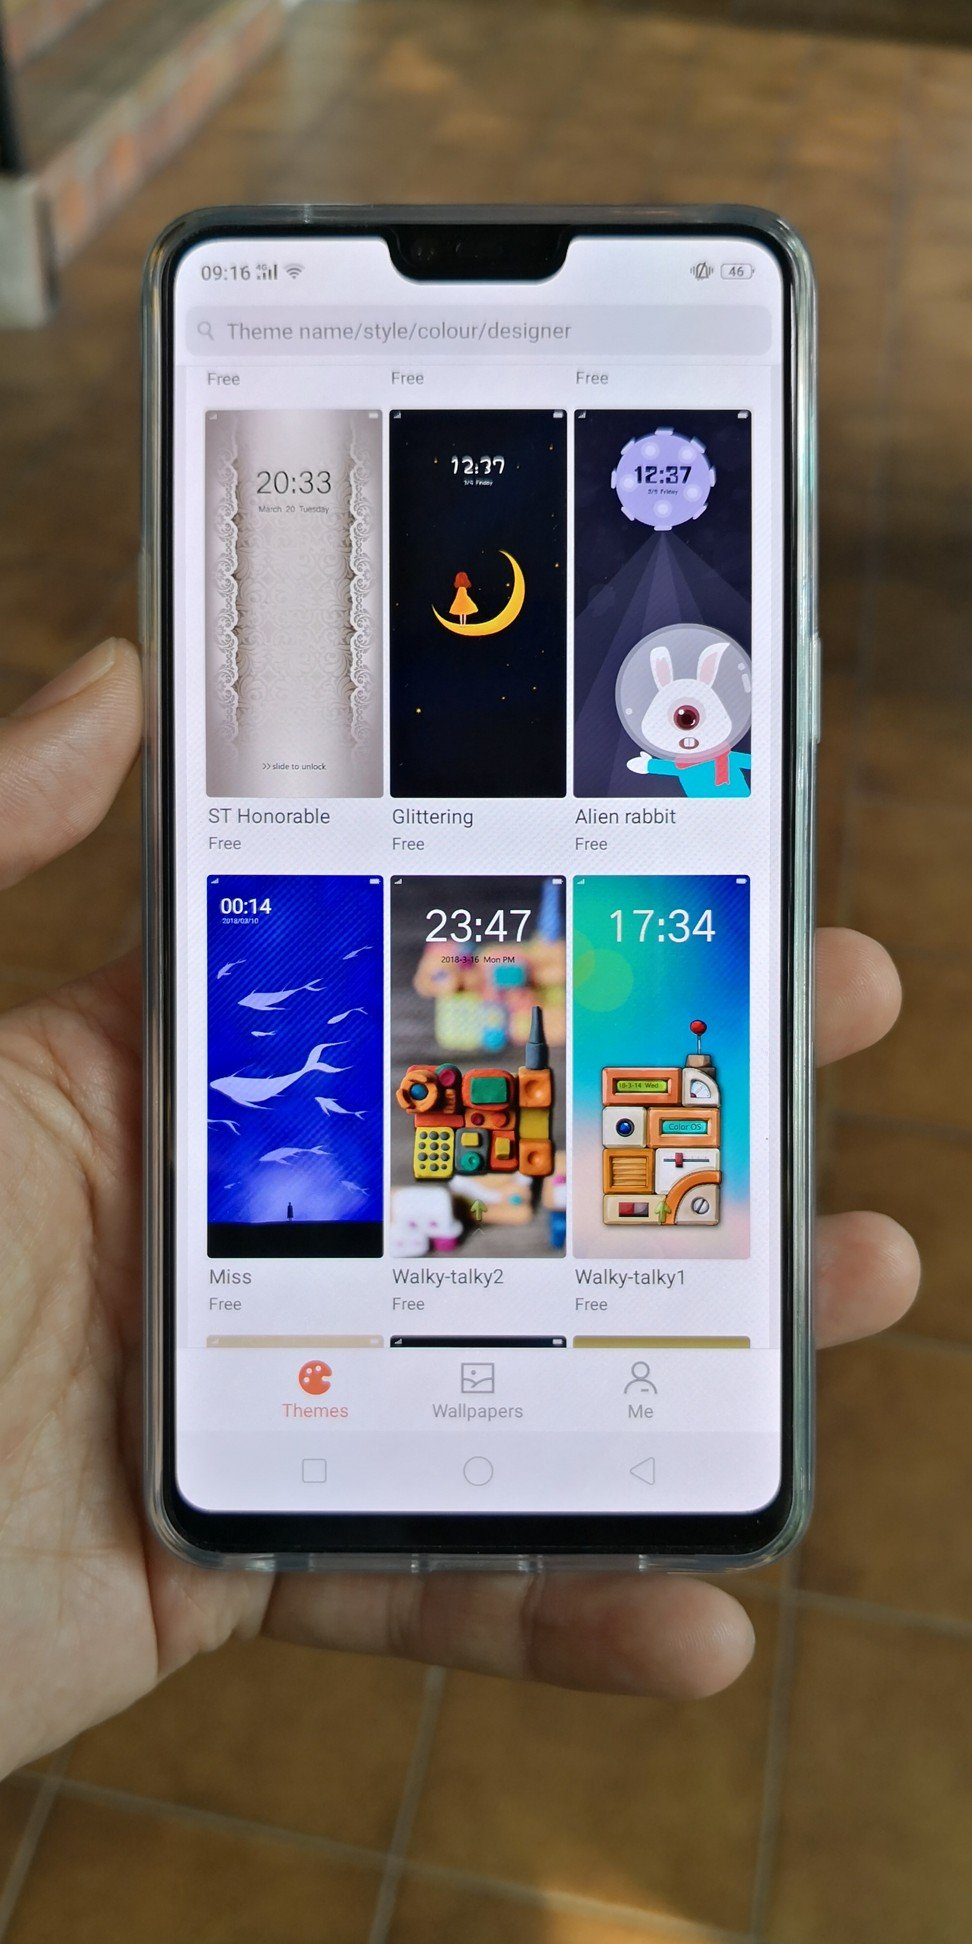 Oppo R15 Smartphone Review Bezel Free Beauty With A Notch Is More Iphone 7 128gb Black Grs International Front View Of The Featuring X Like At Top Phone